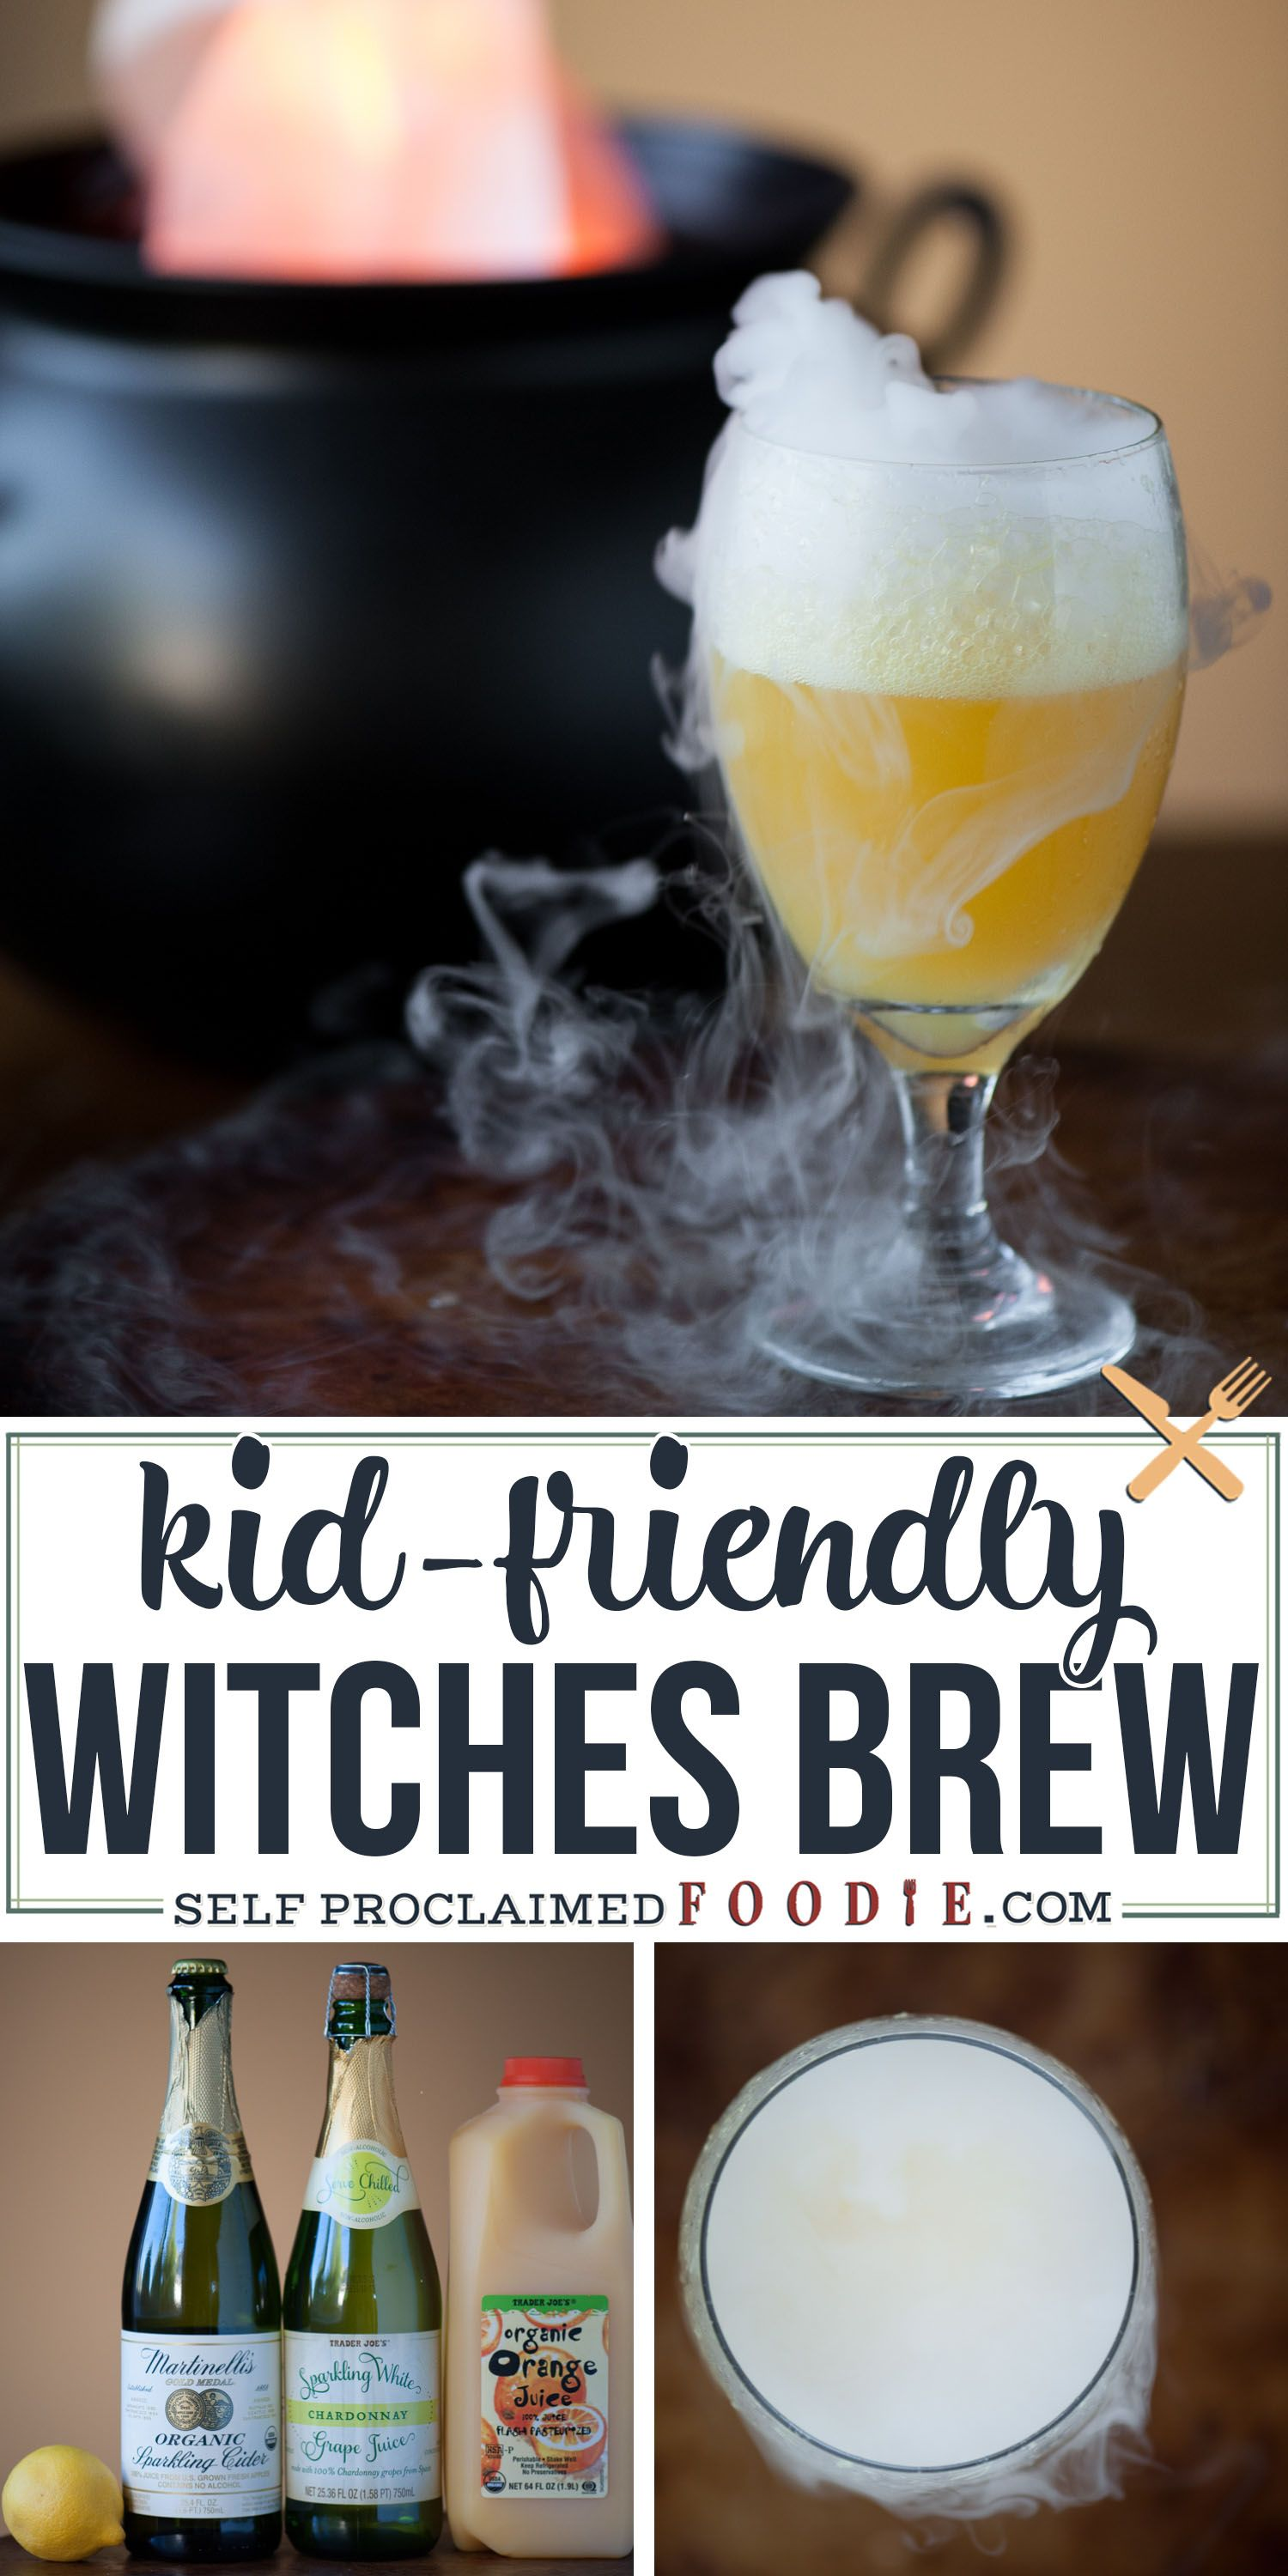 This sweet and sparkling Halloween Witches' Brew made with